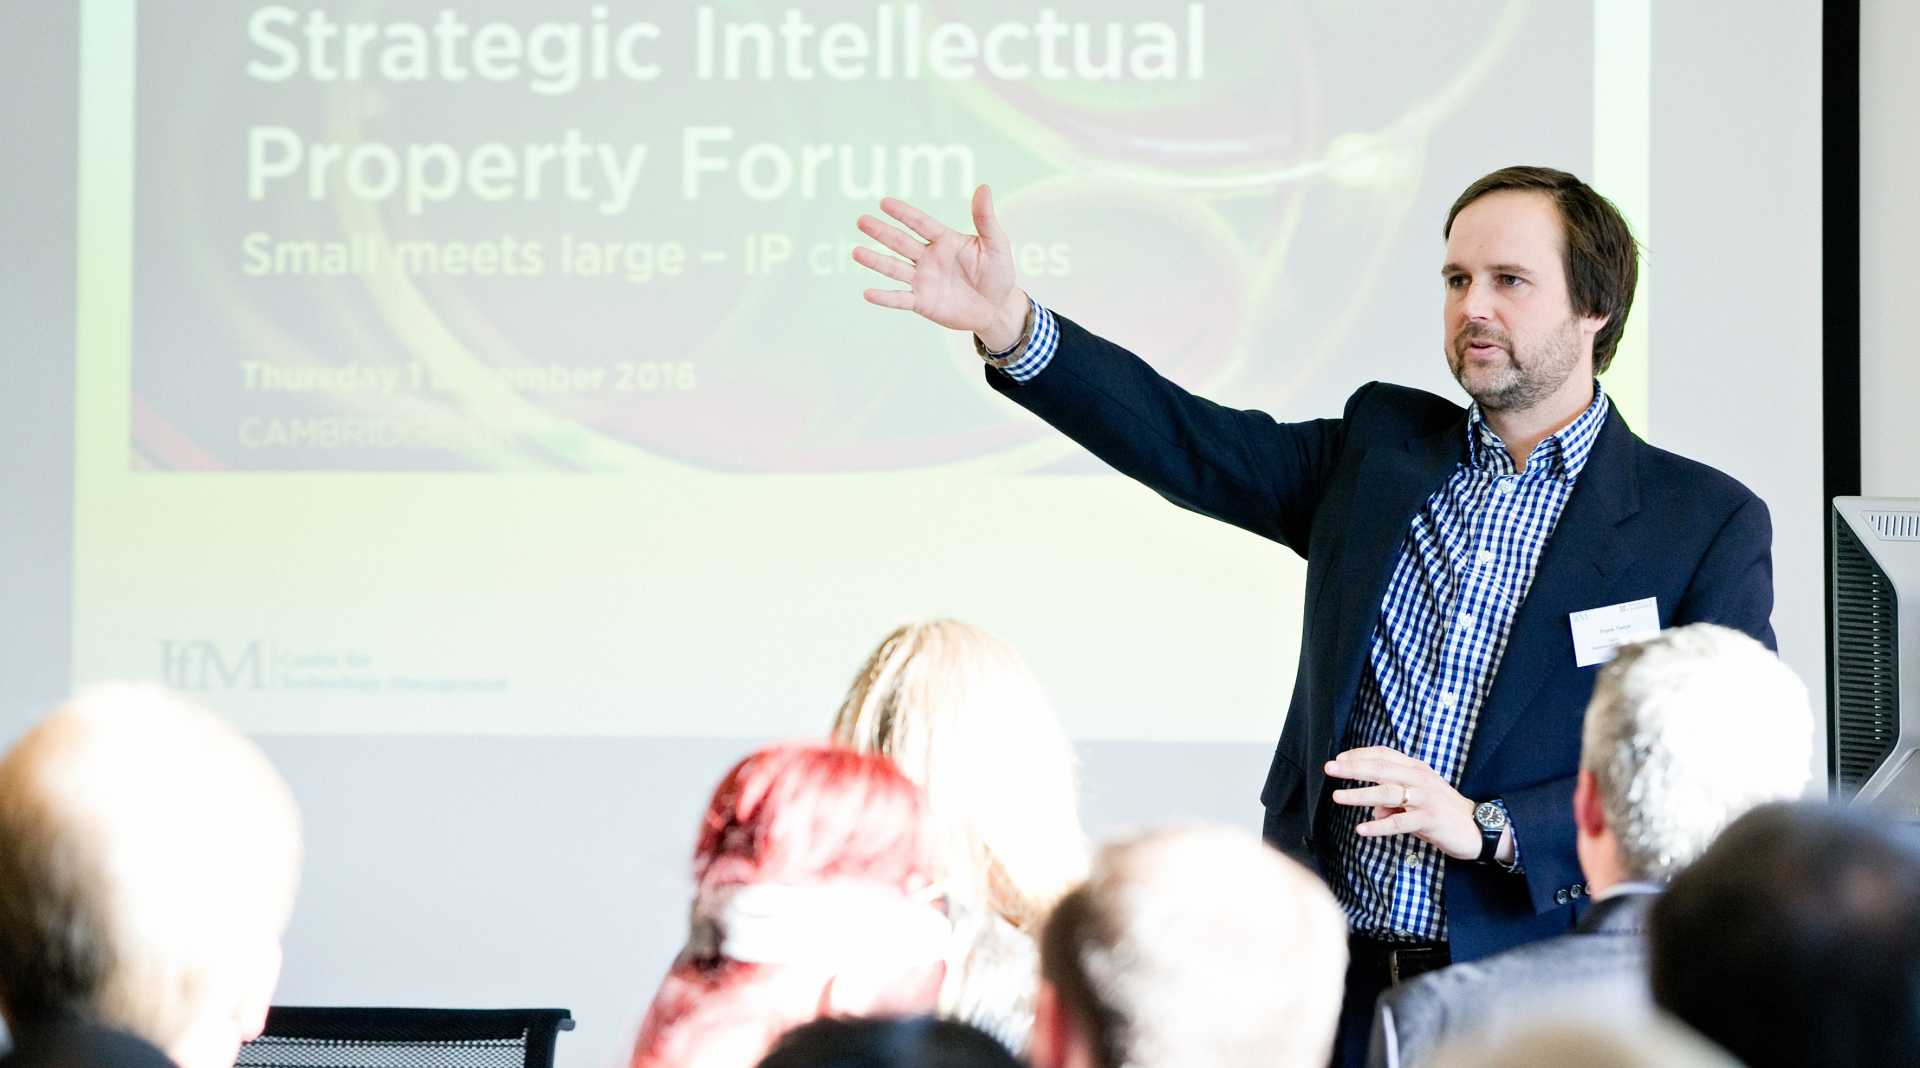 Dr Frank Tietze at the recent Strategic IP Forum in Cambridge - image courtesy of the University of Cambridge's Institute for Manufacturing.